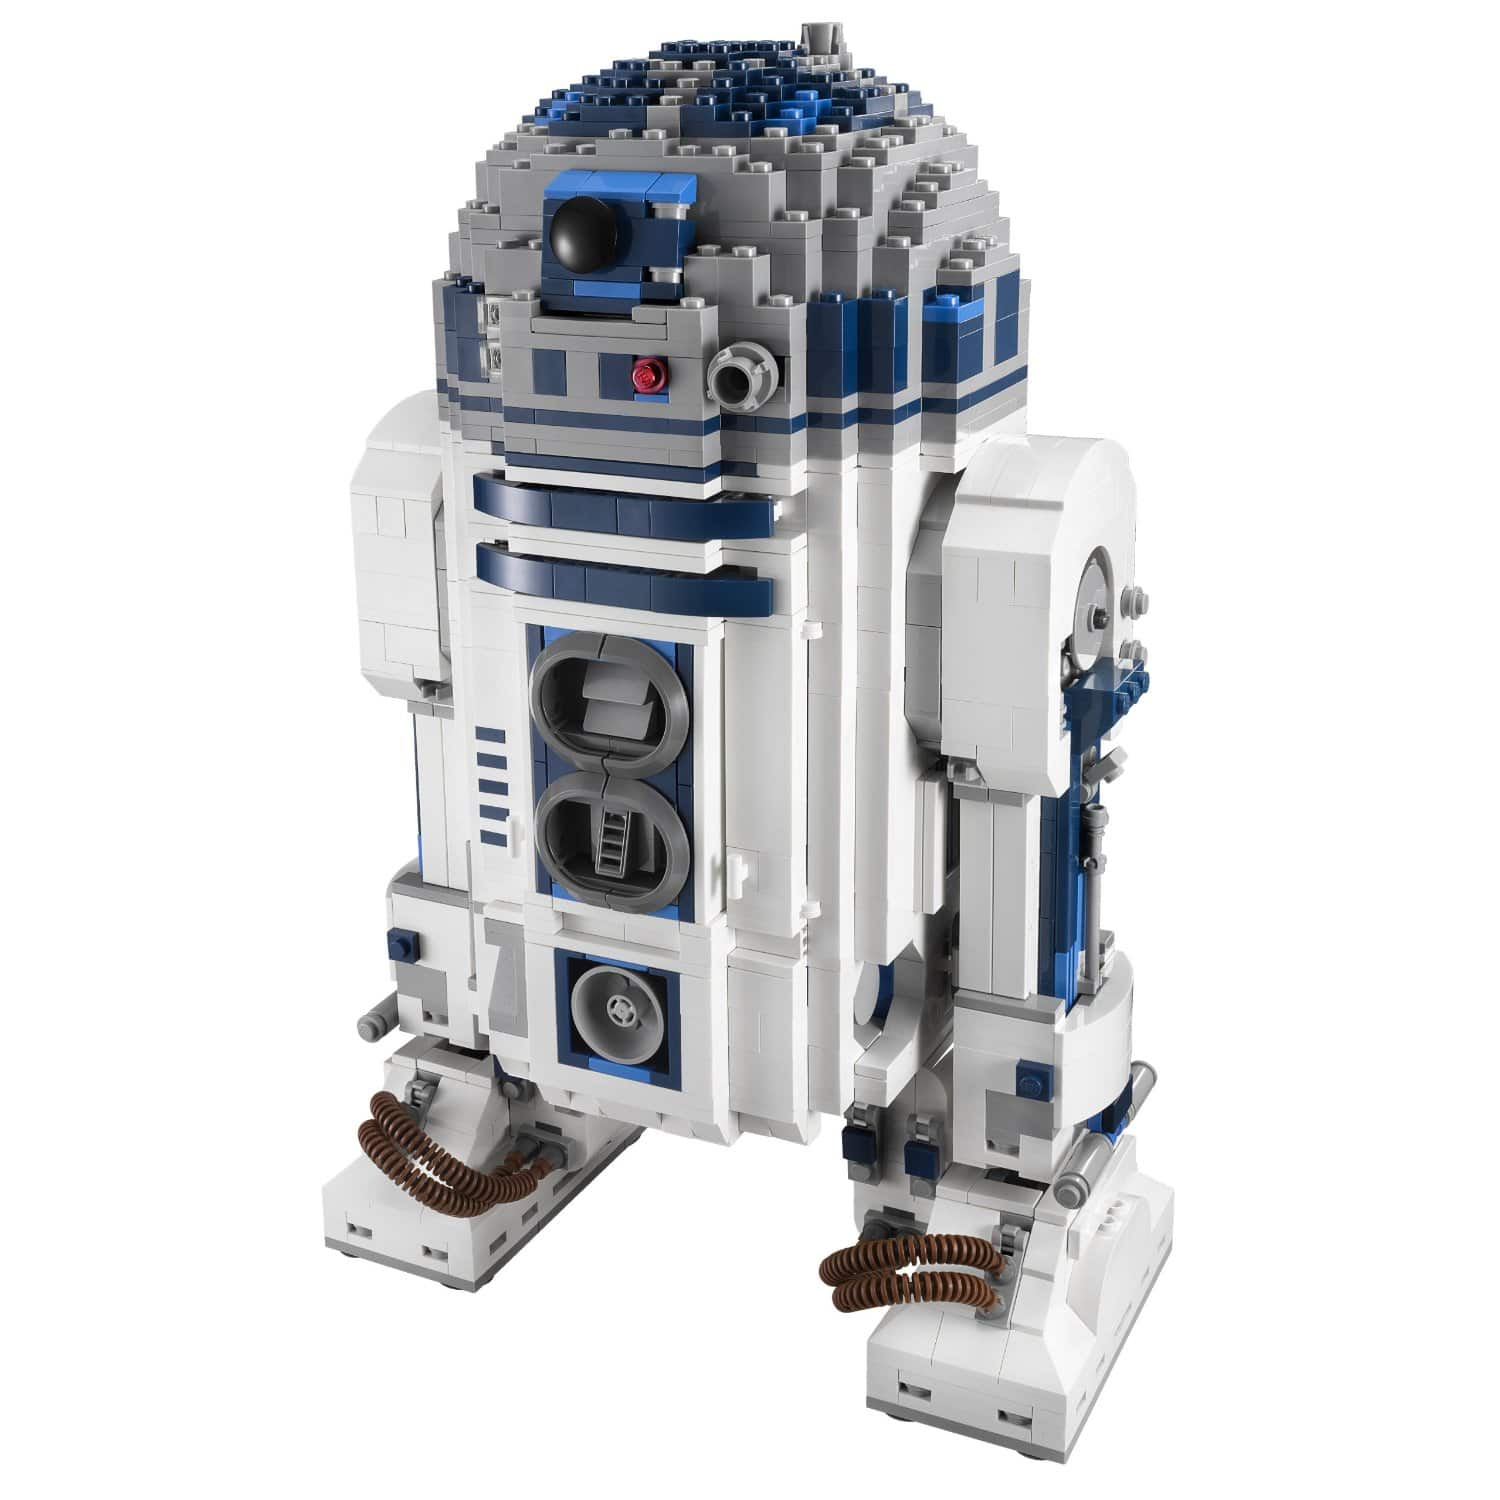 LEGO Star Wars R2-D2 Figure (10225) $140 + Free shipping